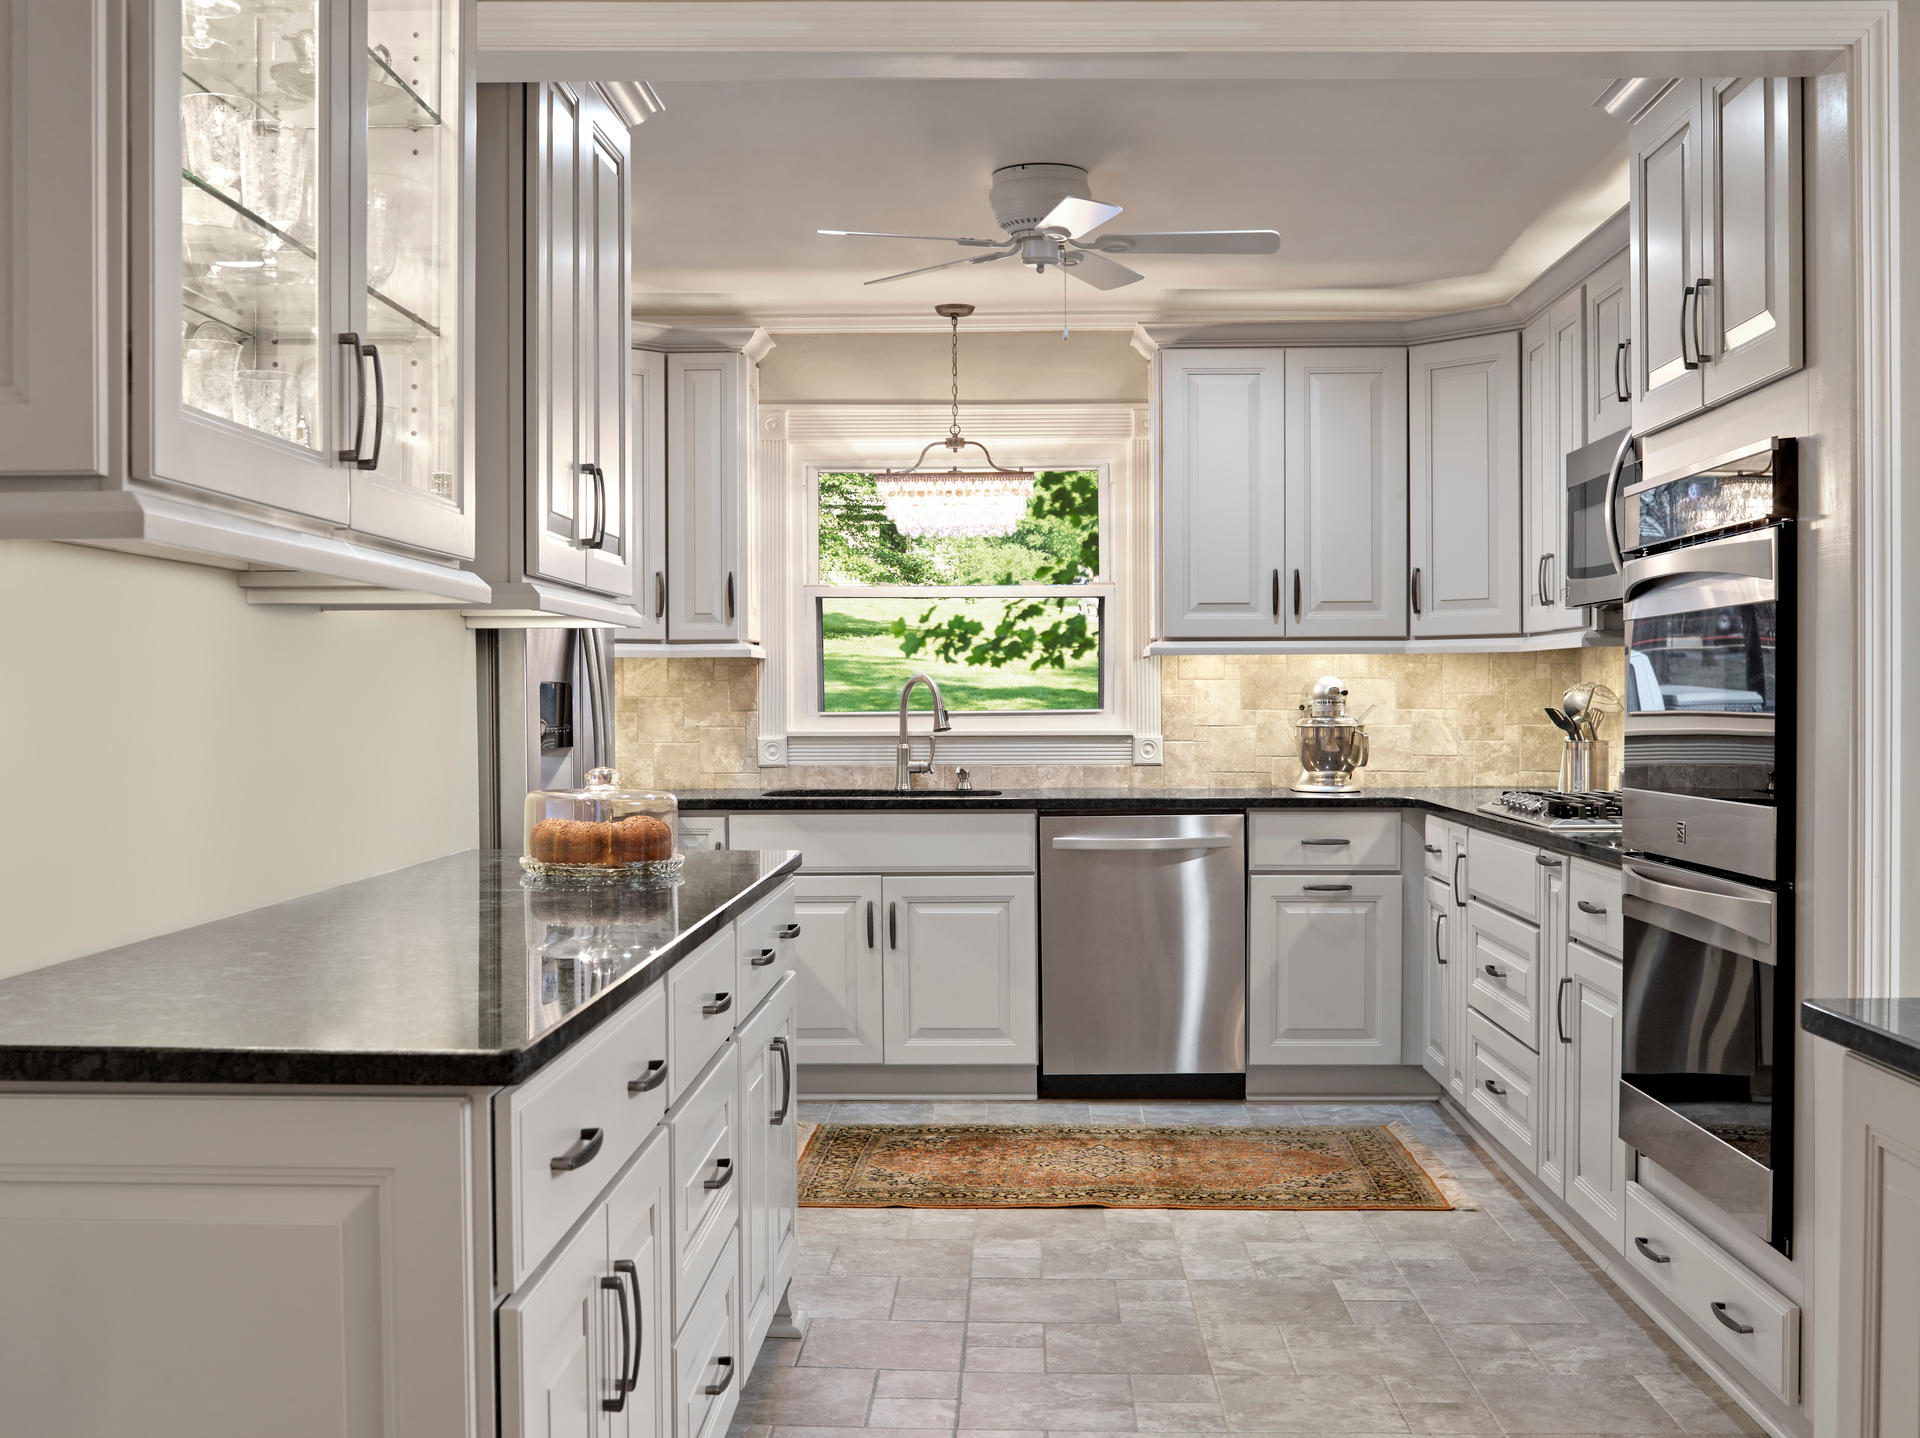 Us Stone Outlet Cabinets & Countertops Of Baton Rouge. How To Professionally Paint Kitchen Cabinets. Large Kitchen Cabinets. Decorating Tops Of Kitchen Cabinets. Painted Kitchen Cabinet Color Ideas. Custom Kitchen Cabinet Manufacturers. Pink Kitchen Cabinets. Custom Painted Kitchen Cabinets. Best Kitchen Cabinets Uk